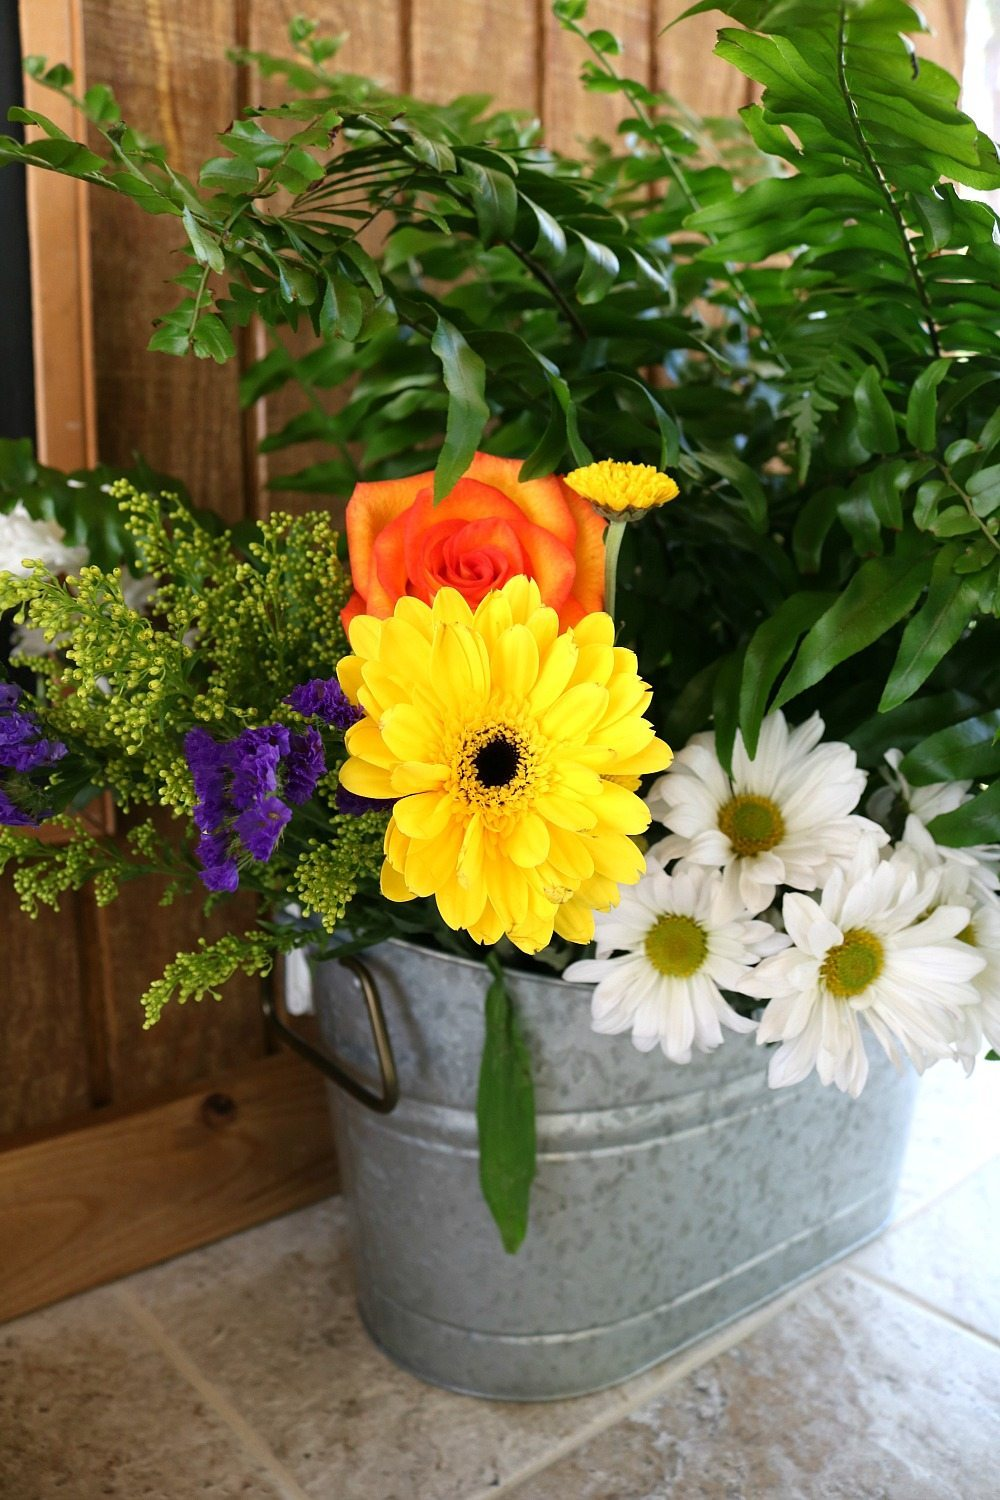 Farmhouse flowers in a galvanized bucket perfect for any decor